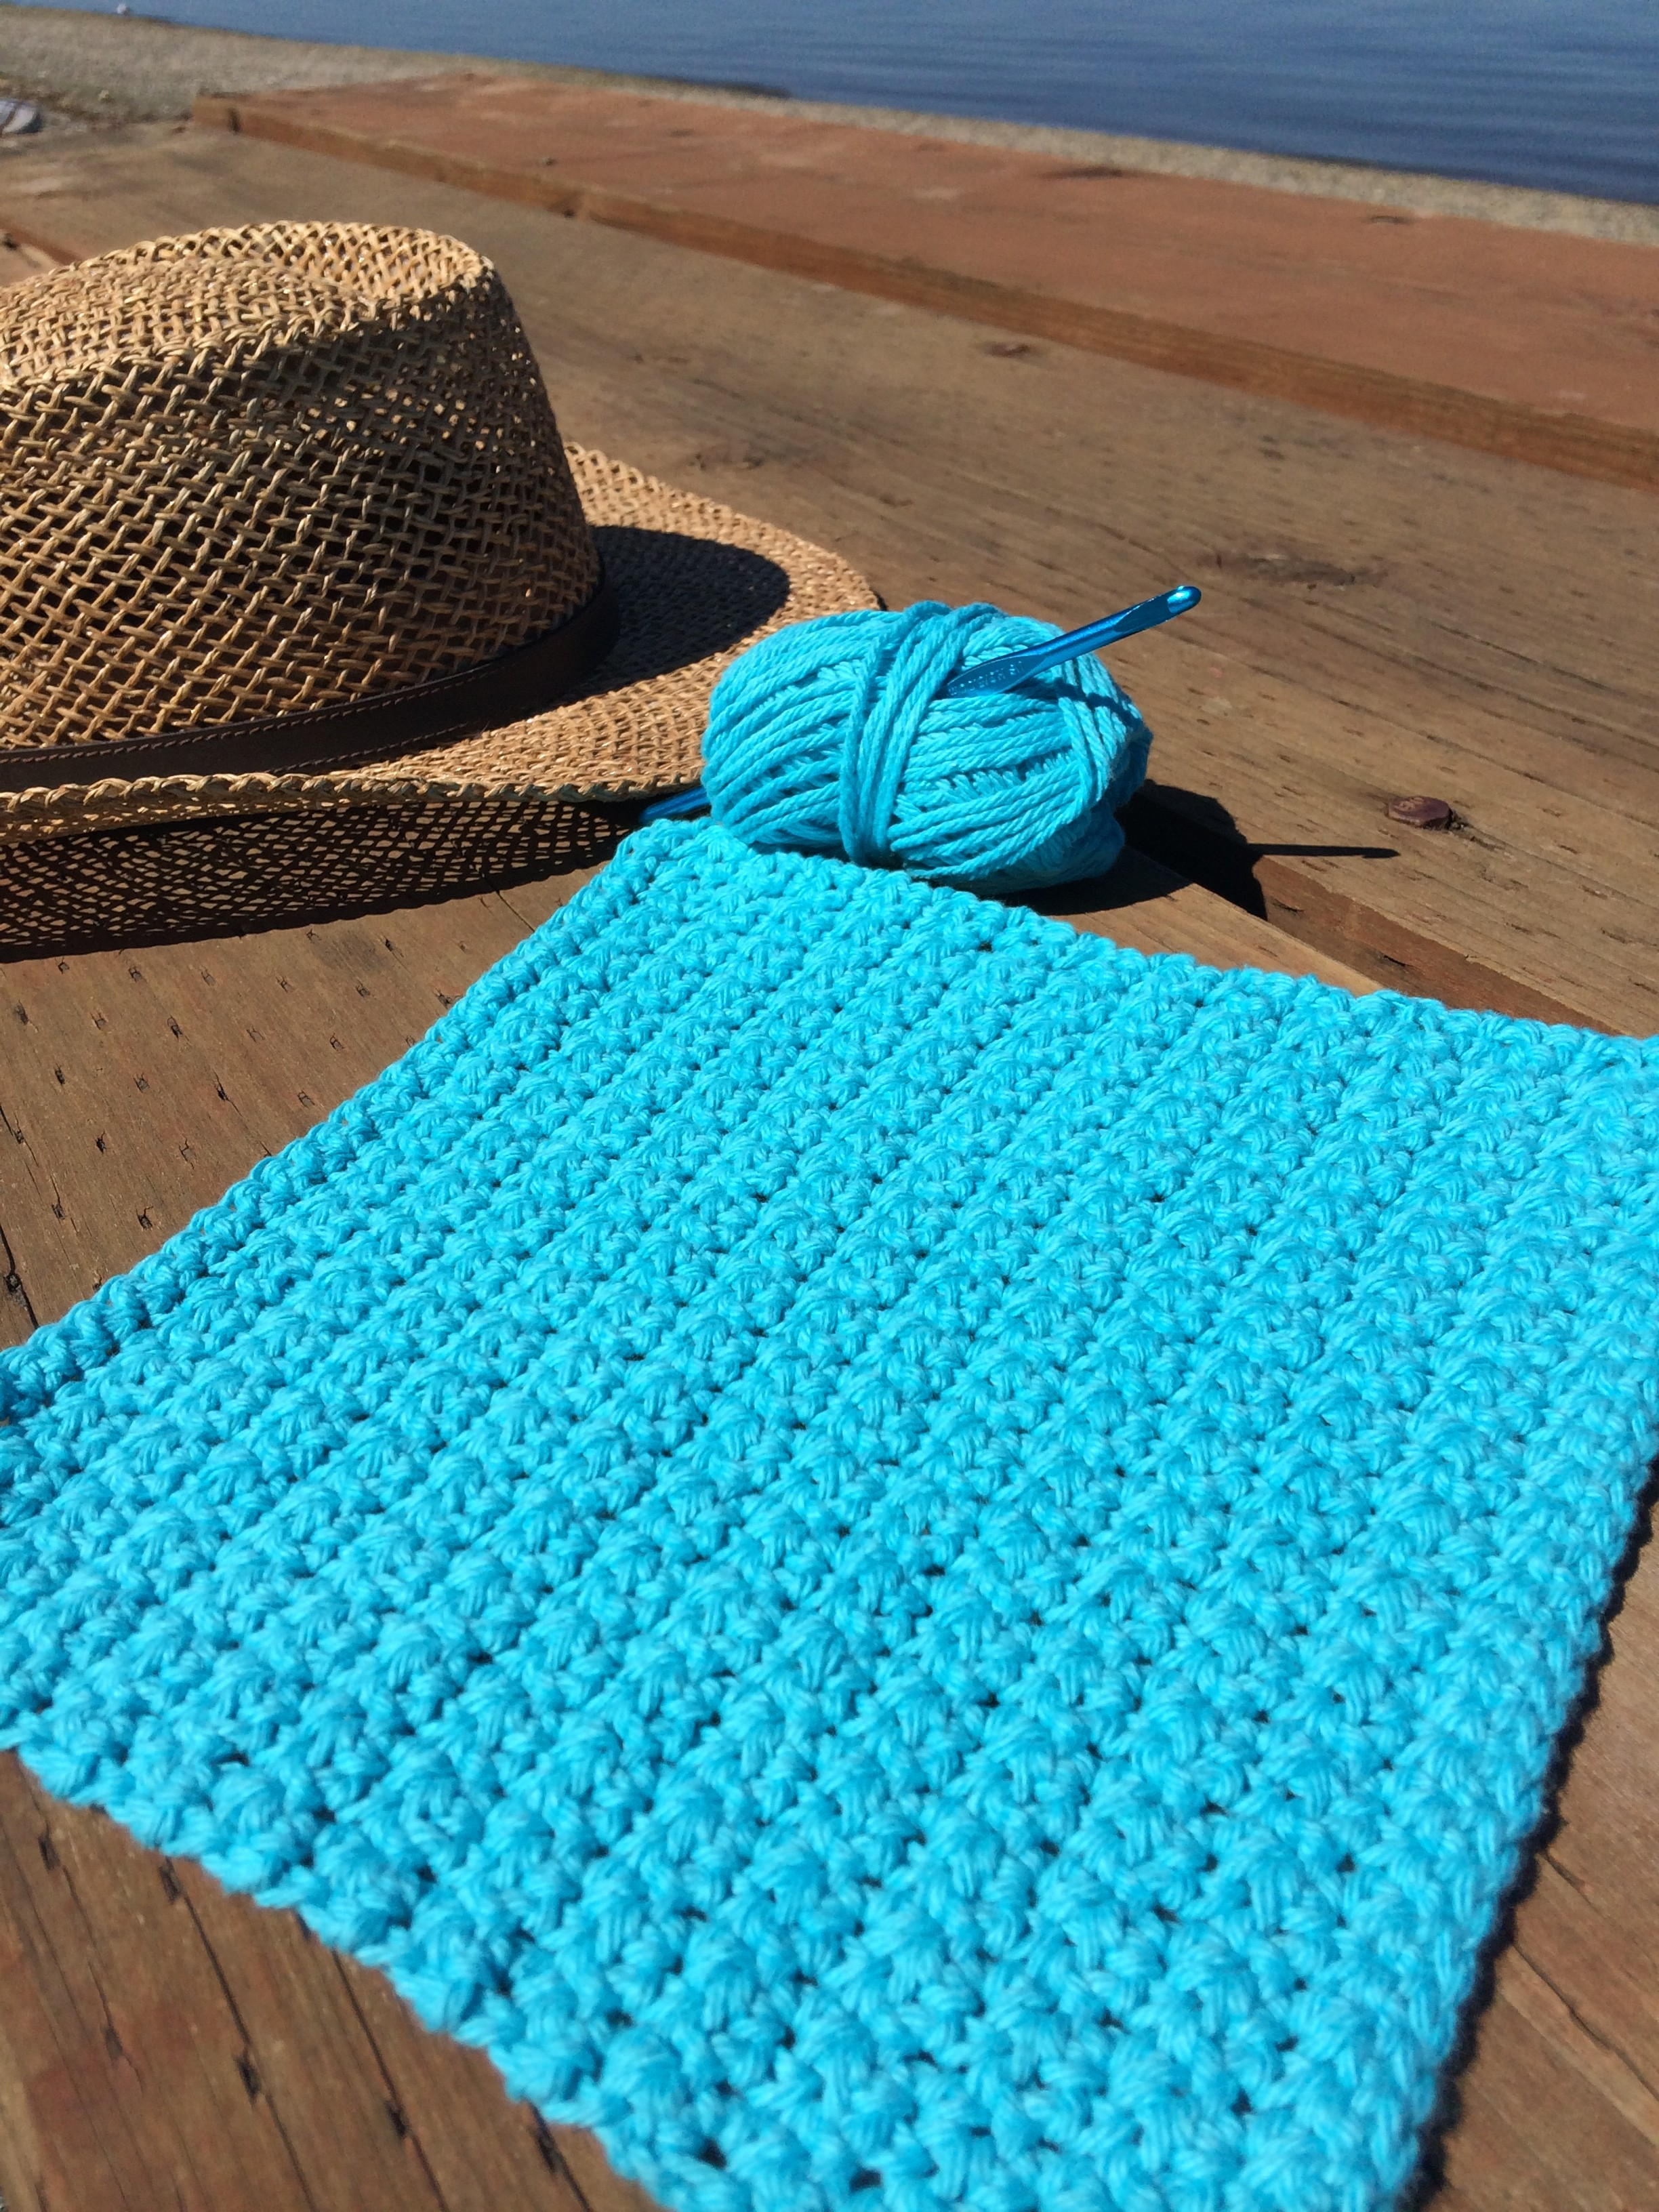 Super Simple Dishcloth